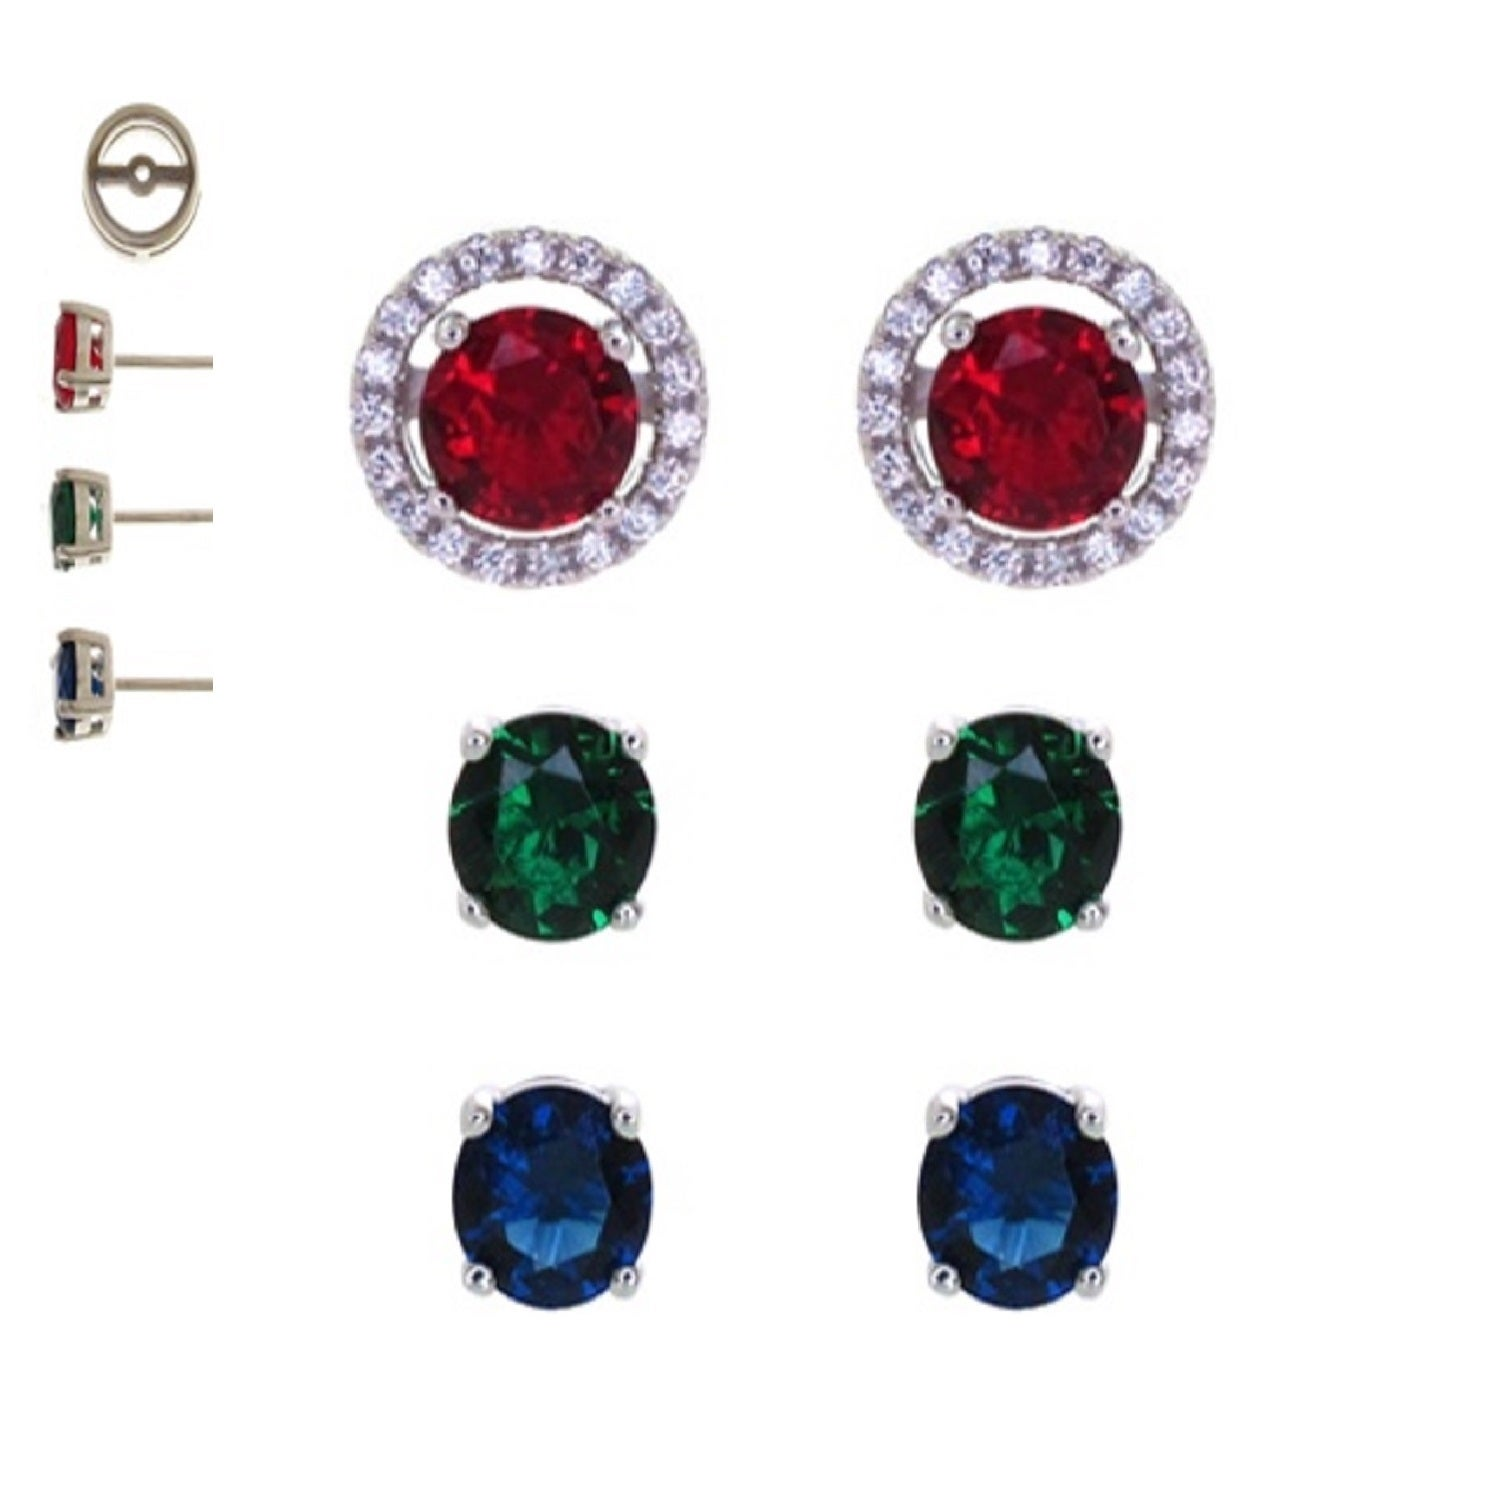 j jewelry stones gold id and in earrings more with sale sapphire for master diamond interchangeable at